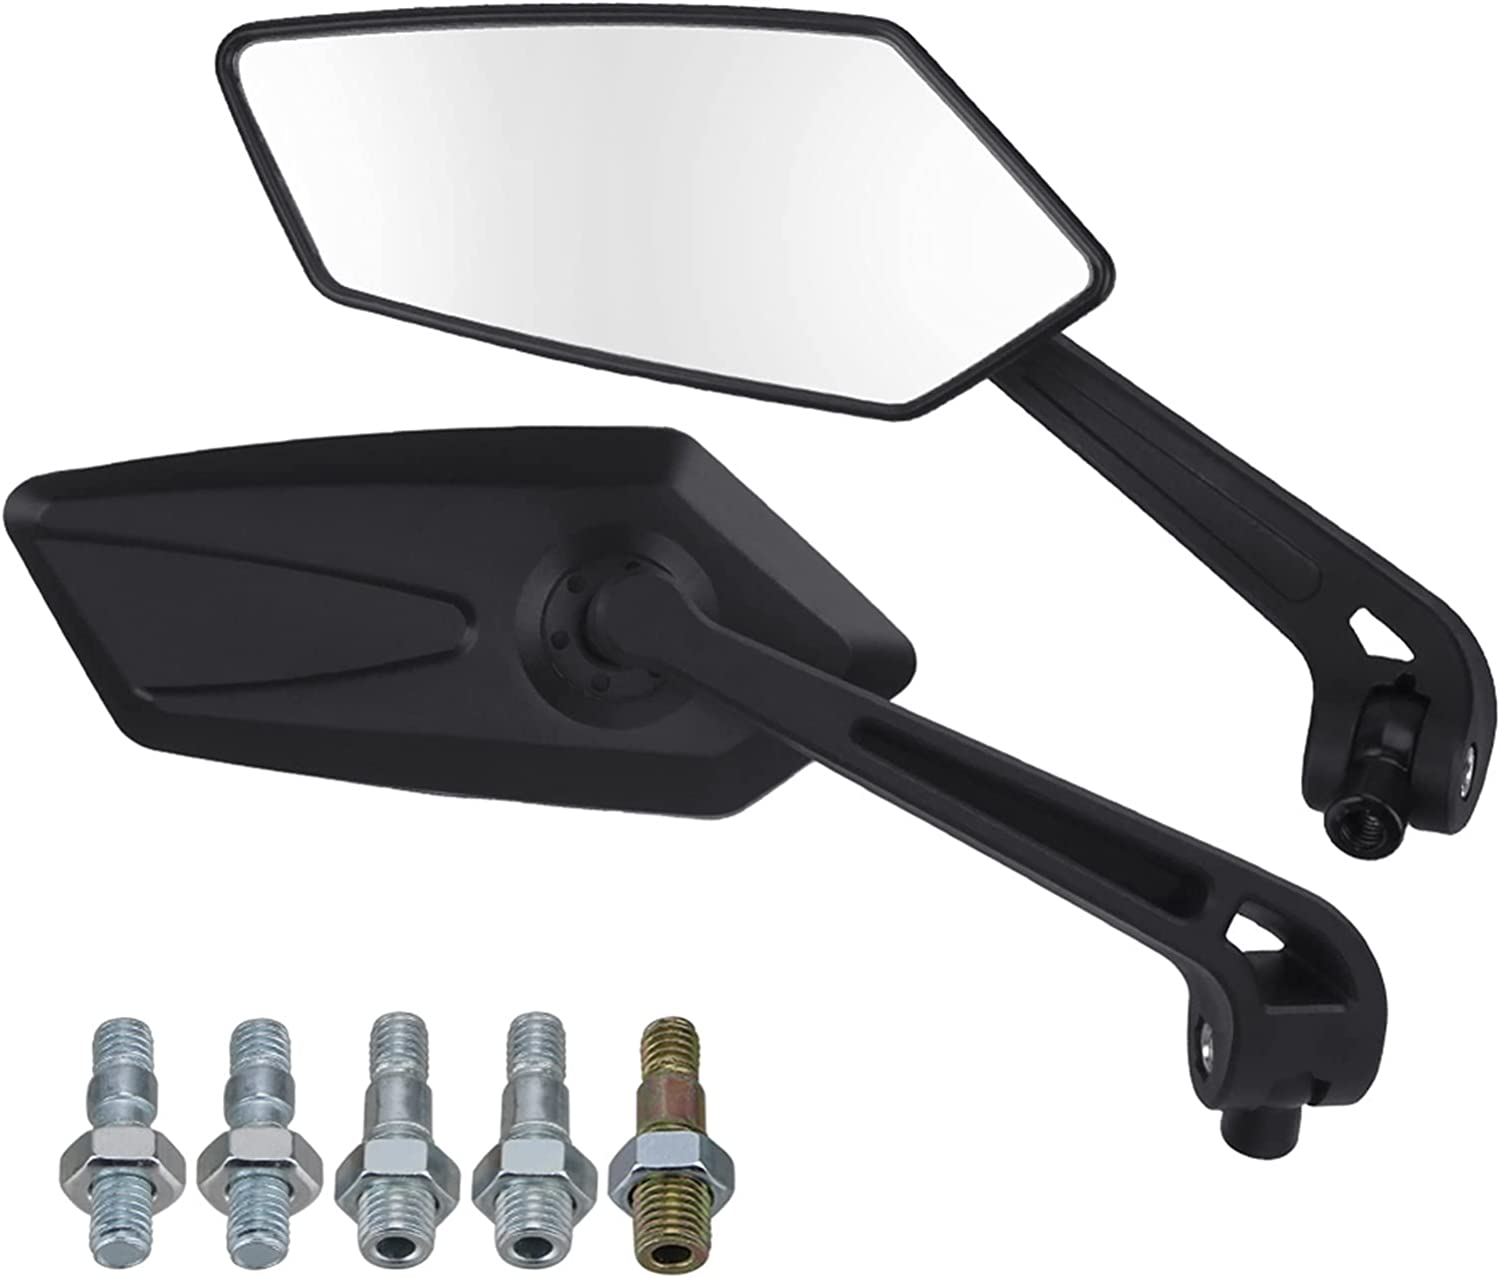 HBSM Now on sale Motorcycle Rear View Rearview Mirror Electromobile Mirrors Max 80% OFF